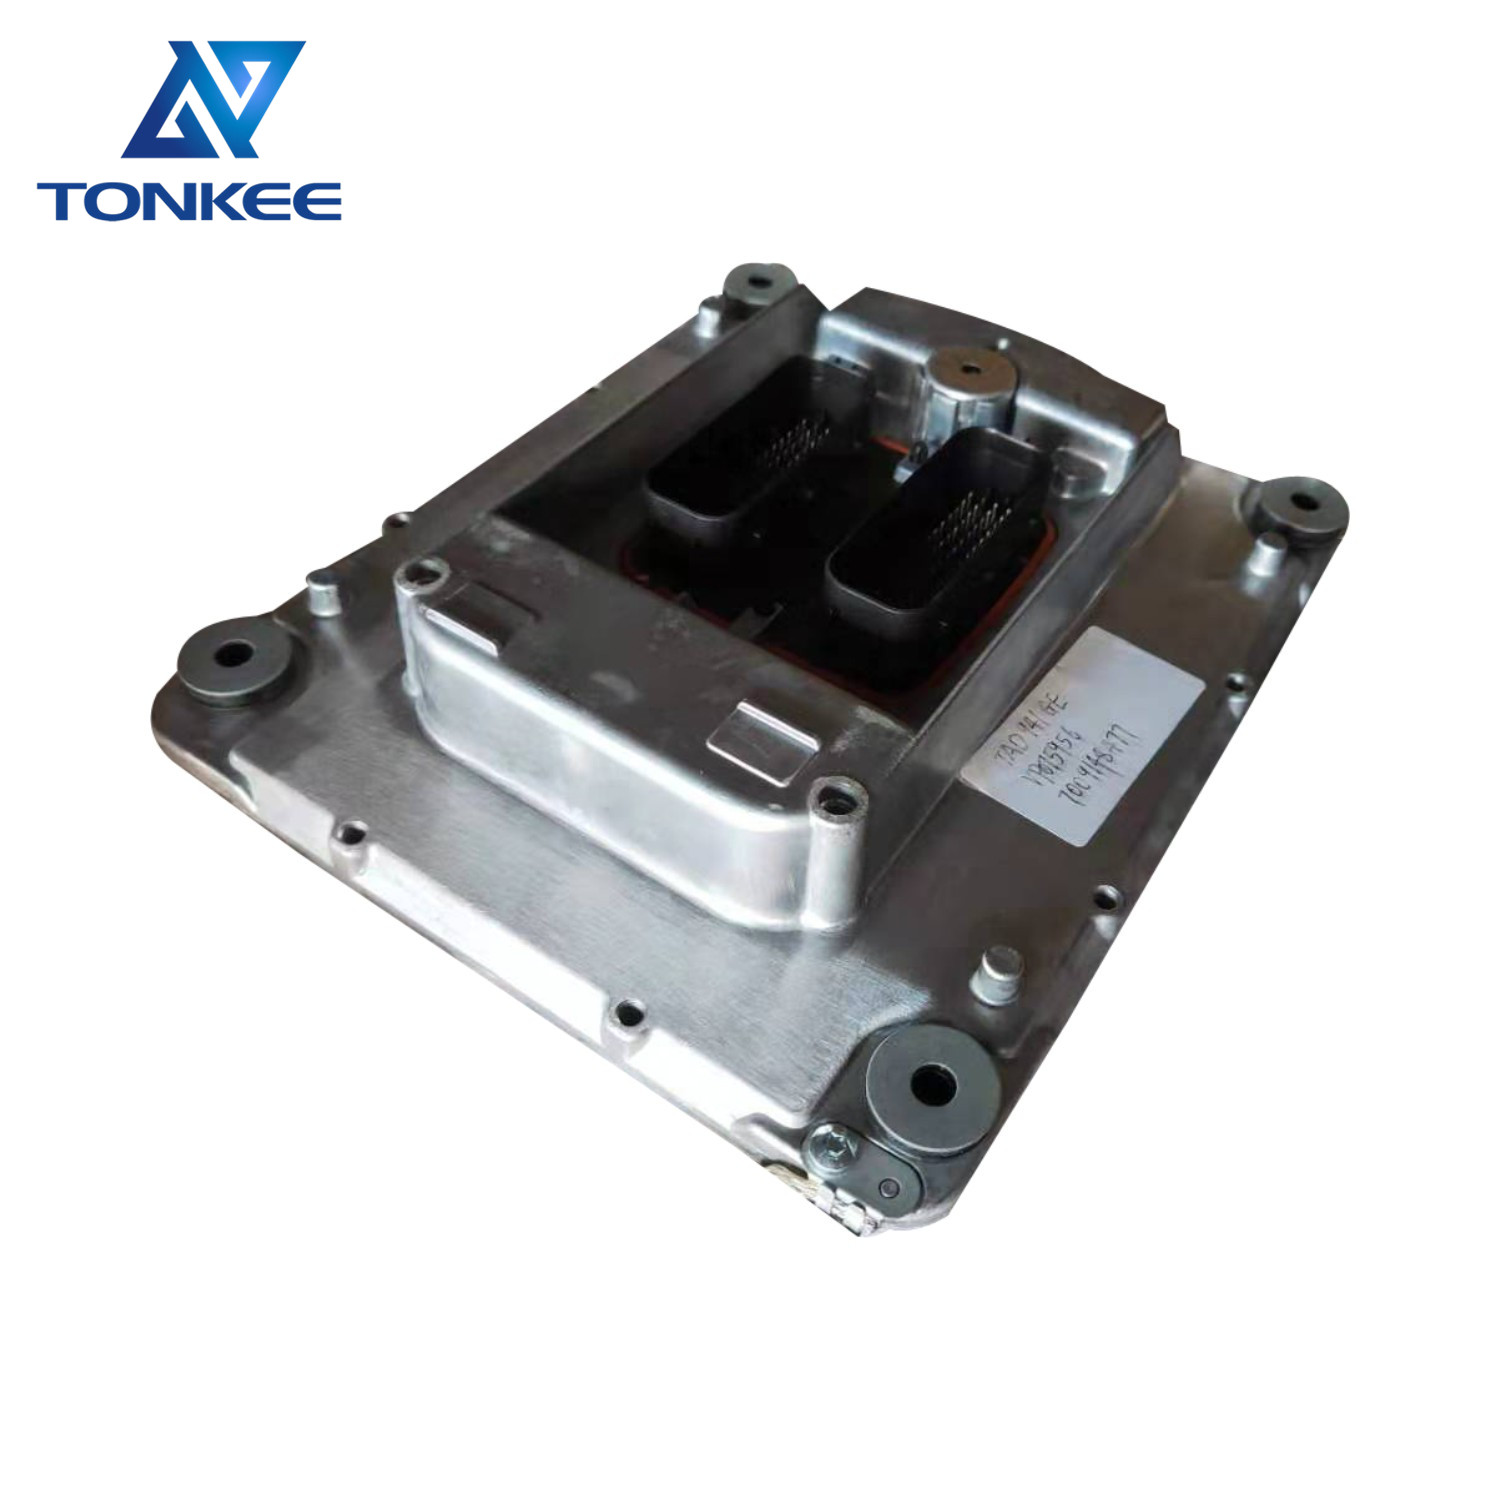 21695319 20814594 control unit TAD941GE TAD940GE D9-A2A engine ECU generator set controller suitable for VOLVO excavation